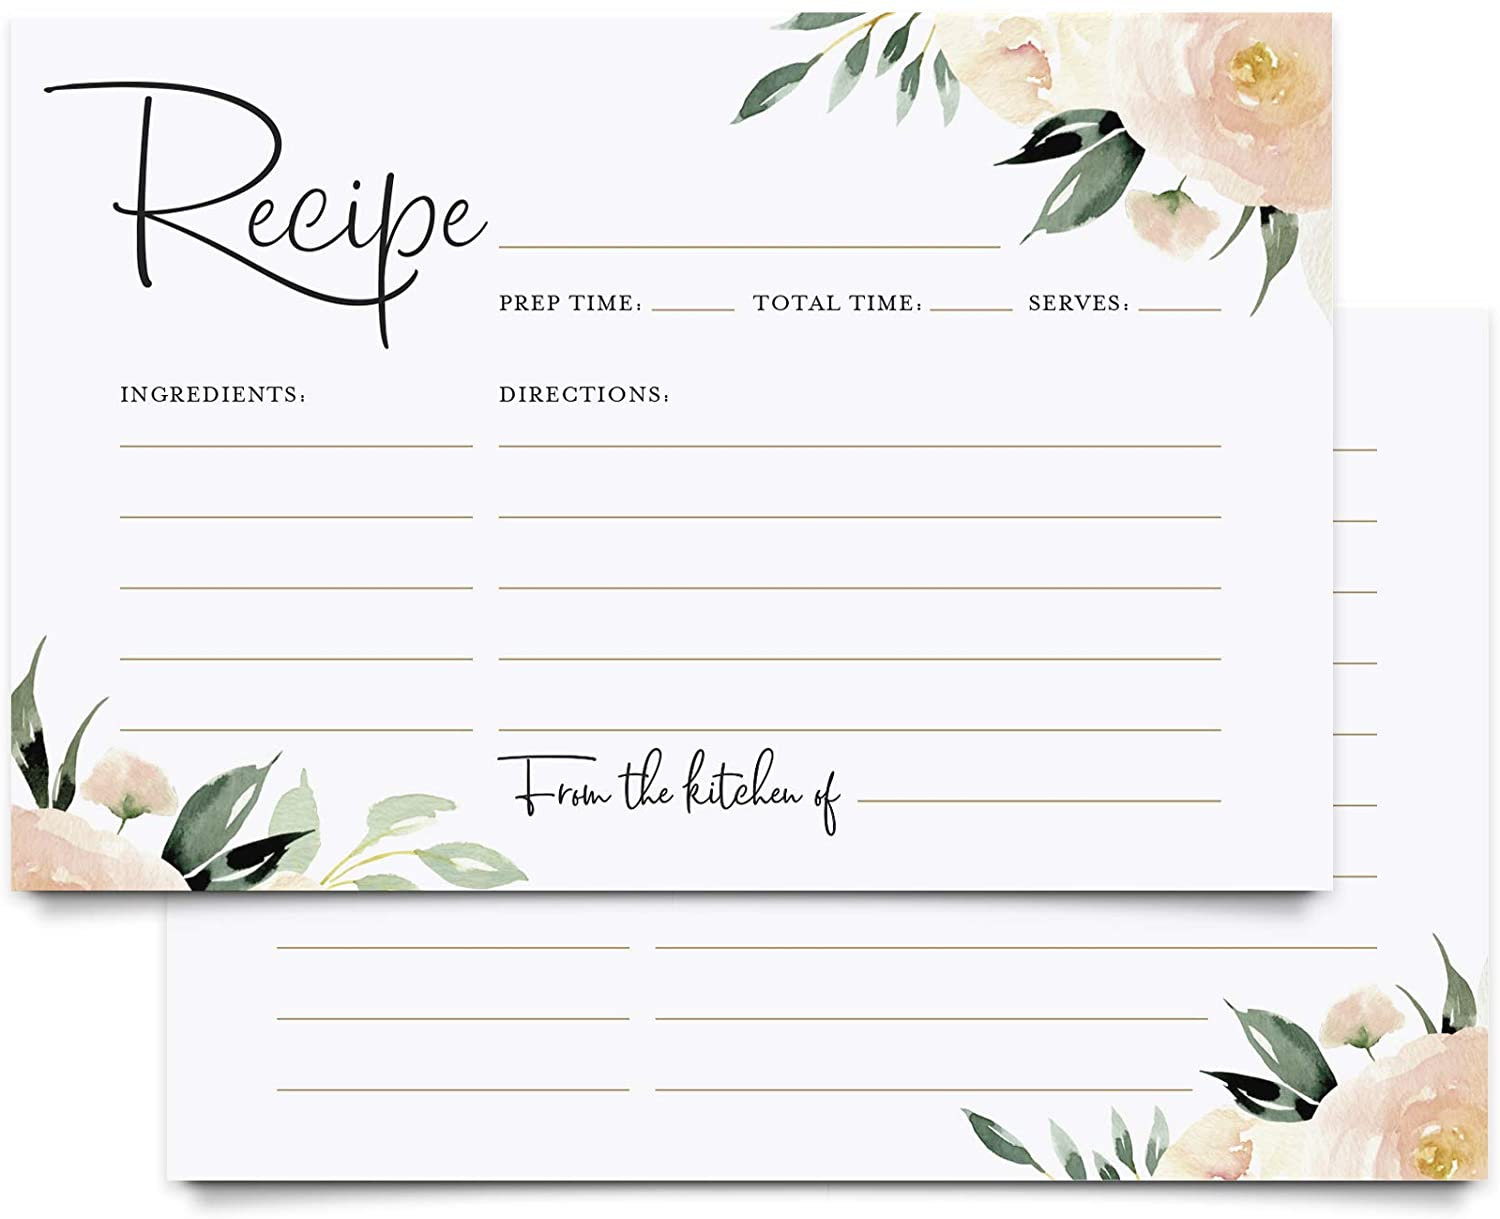 Bliss Collections Floral Recipe Cards, Double Sided, Coral and Greenery Flower Design for Bridal Shower, Wedding Shower, Housewarming Gift! Pack of 50 4x6 Cards